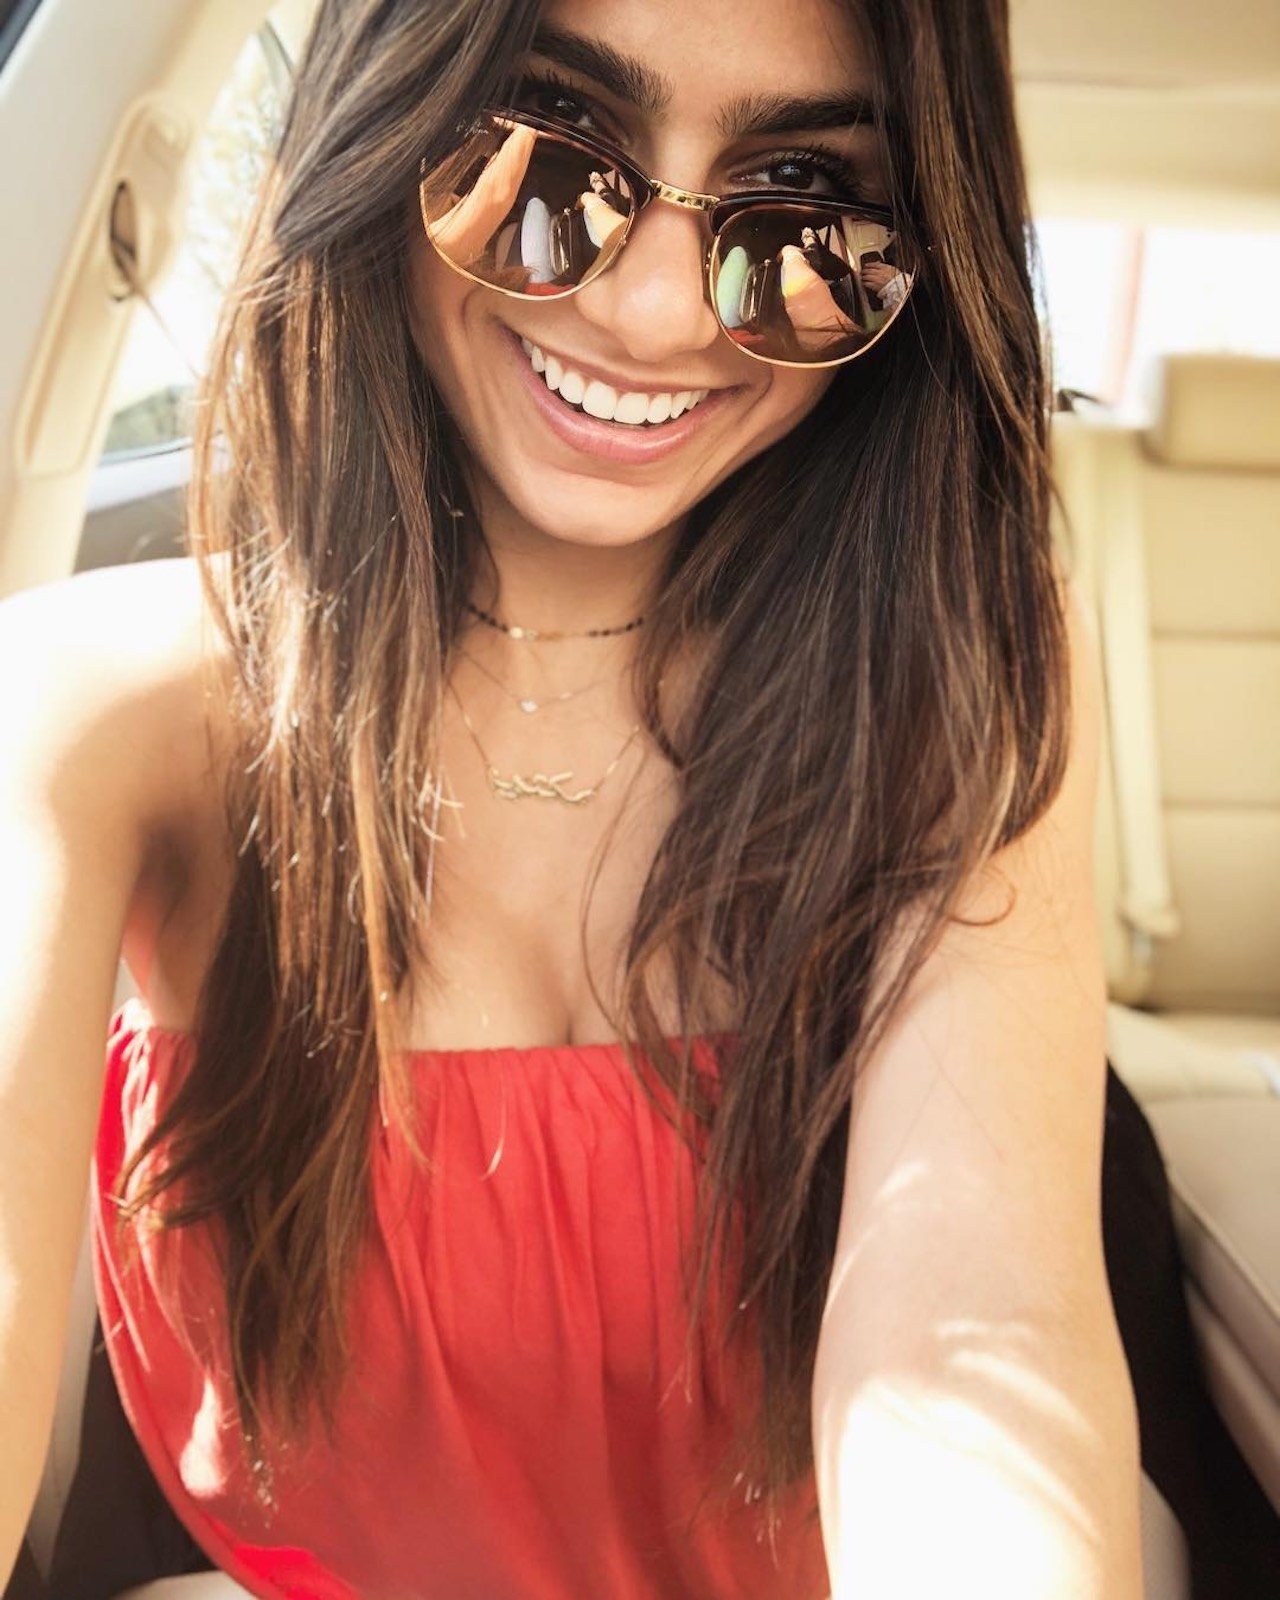 Mia Khalifa is boosting her net worth once again by creating an OnlyFans account. But with how against the porn industry she is, is she being hypocritical?